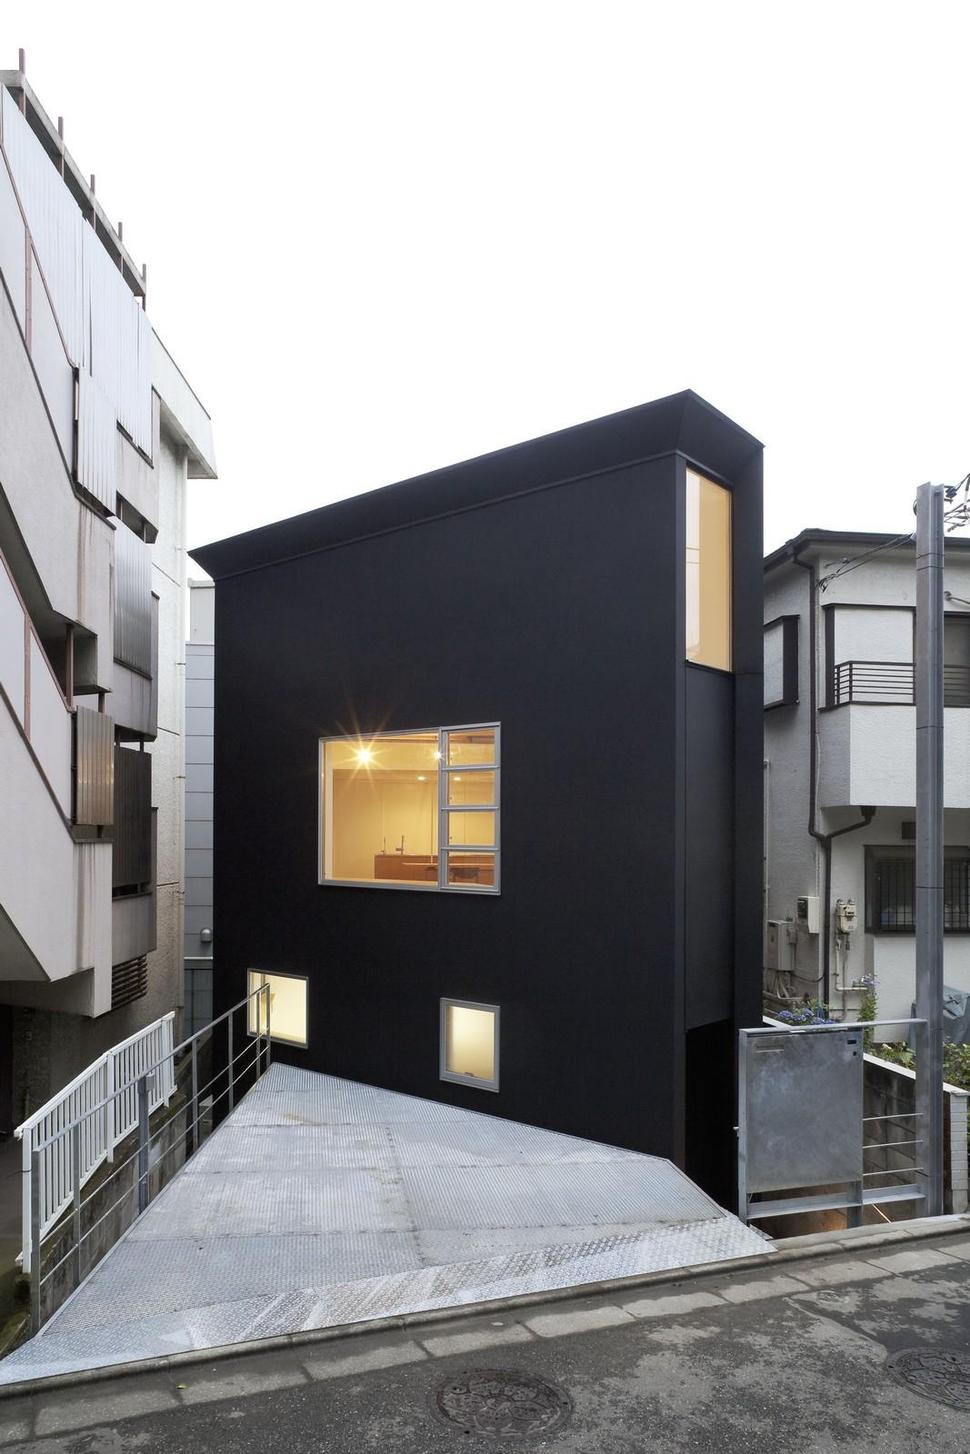 Extremely Narrow House